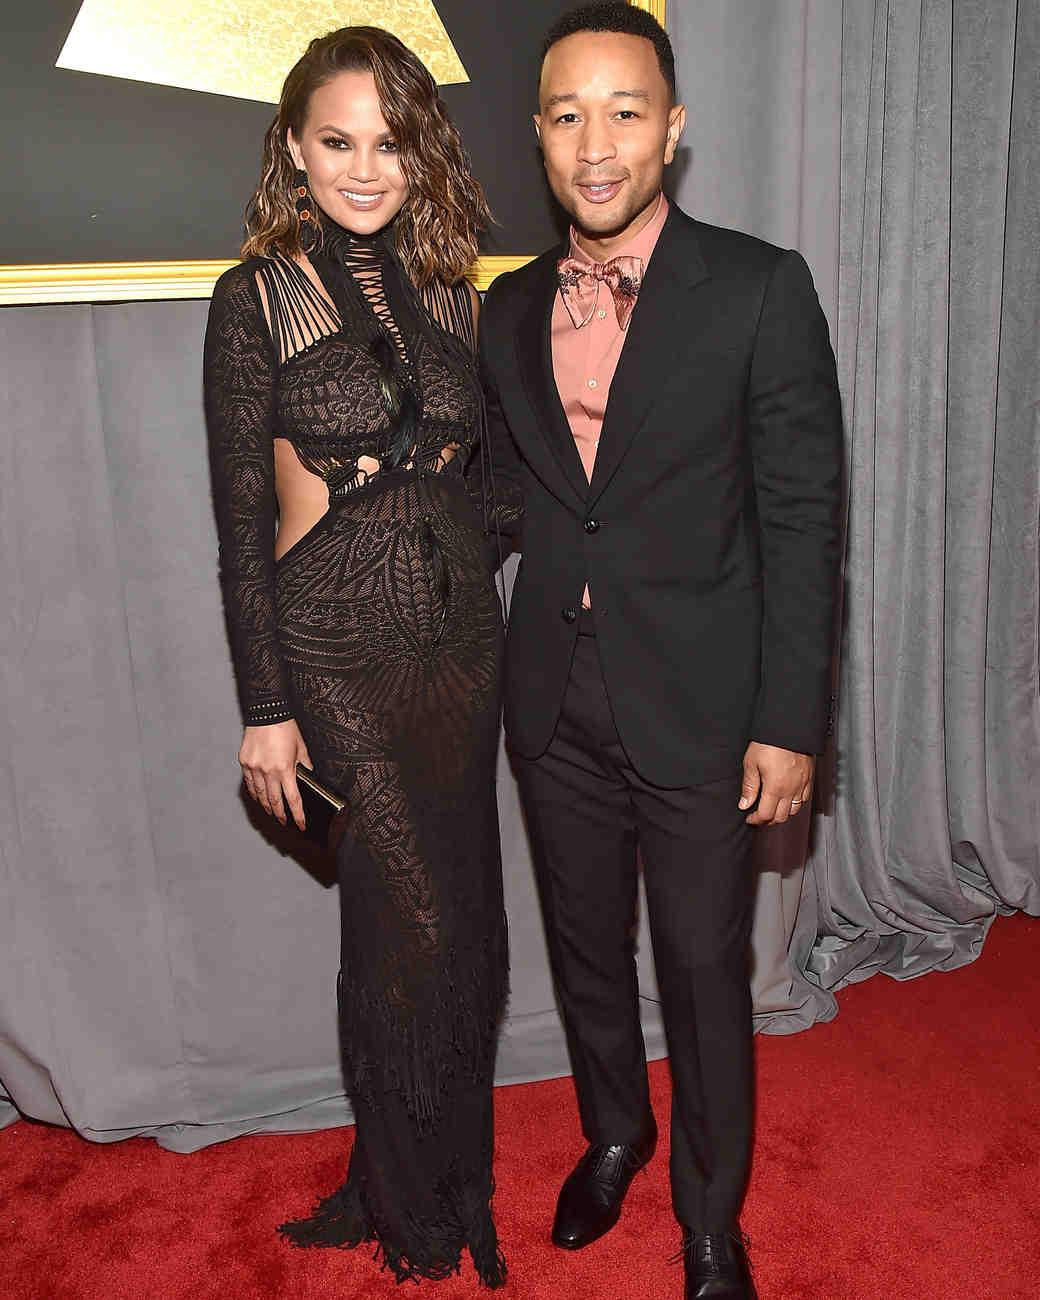 John Legend and Chrissy Teigen Grammy Awards 2017